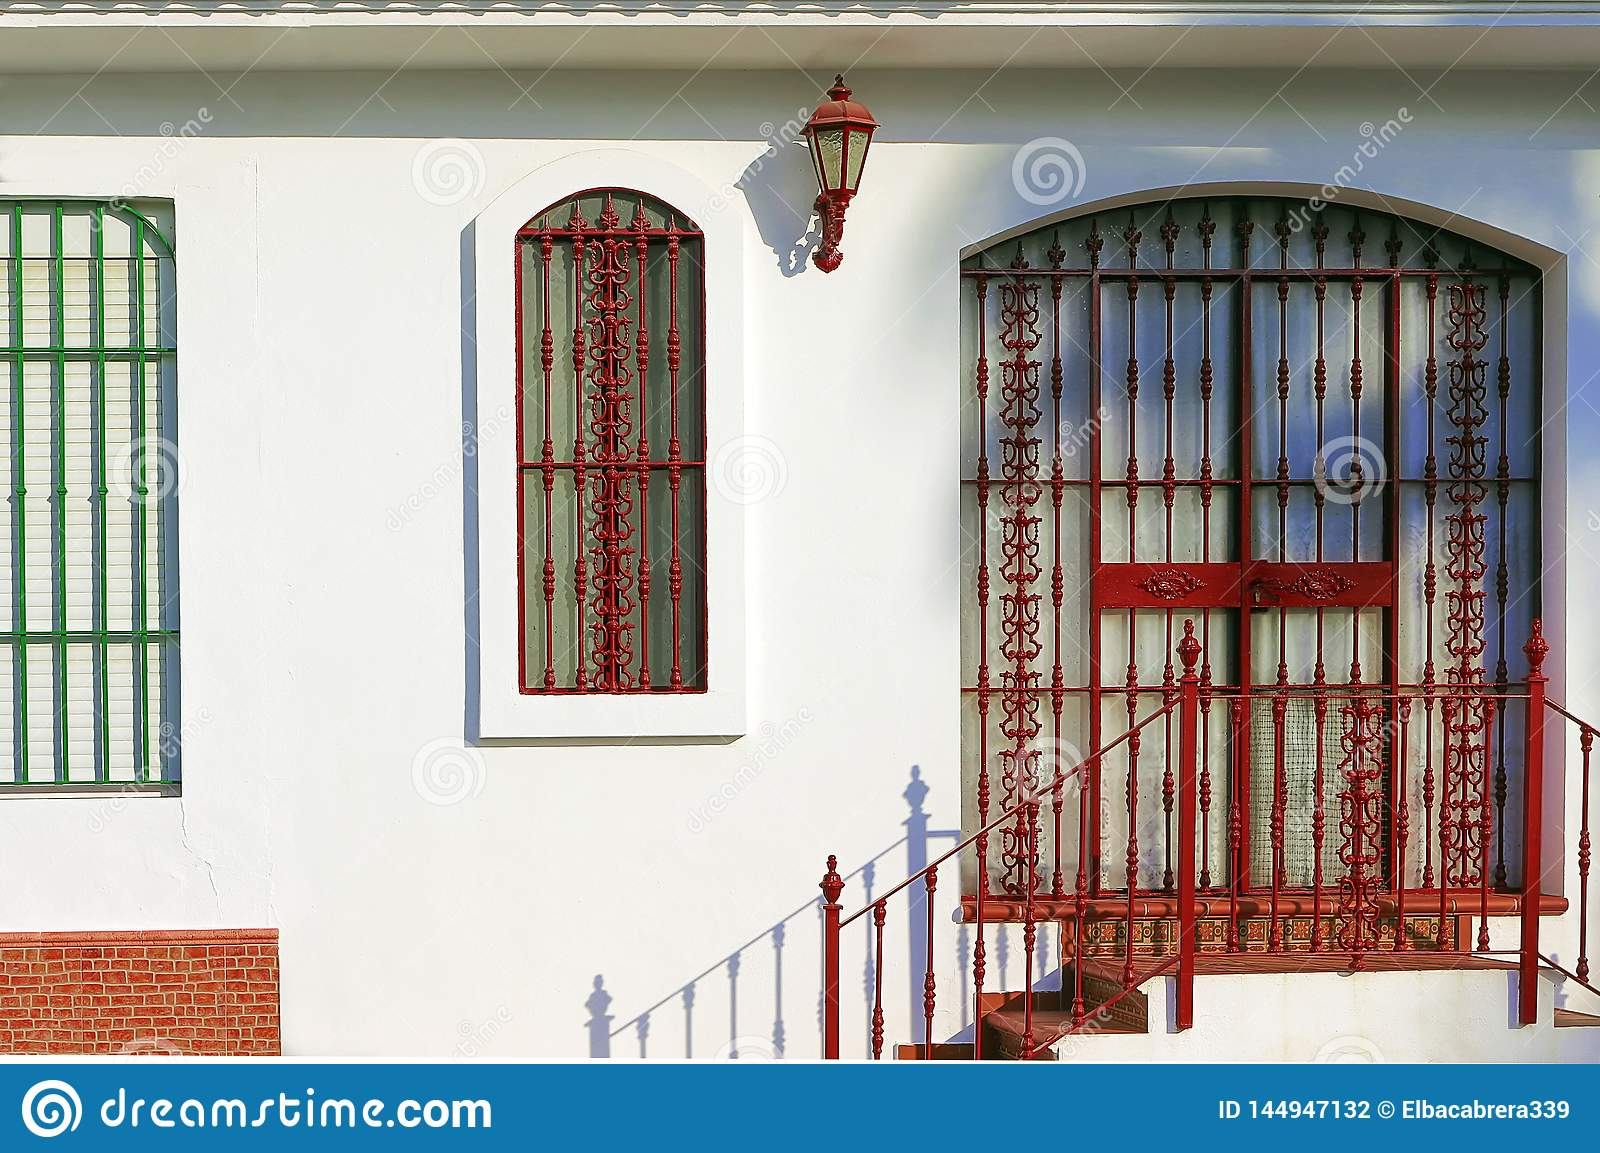 Andalusian House Facade With Wrought Iron Bars On Door And Window Stock Photo Image Of Painted Andalusian 144947132